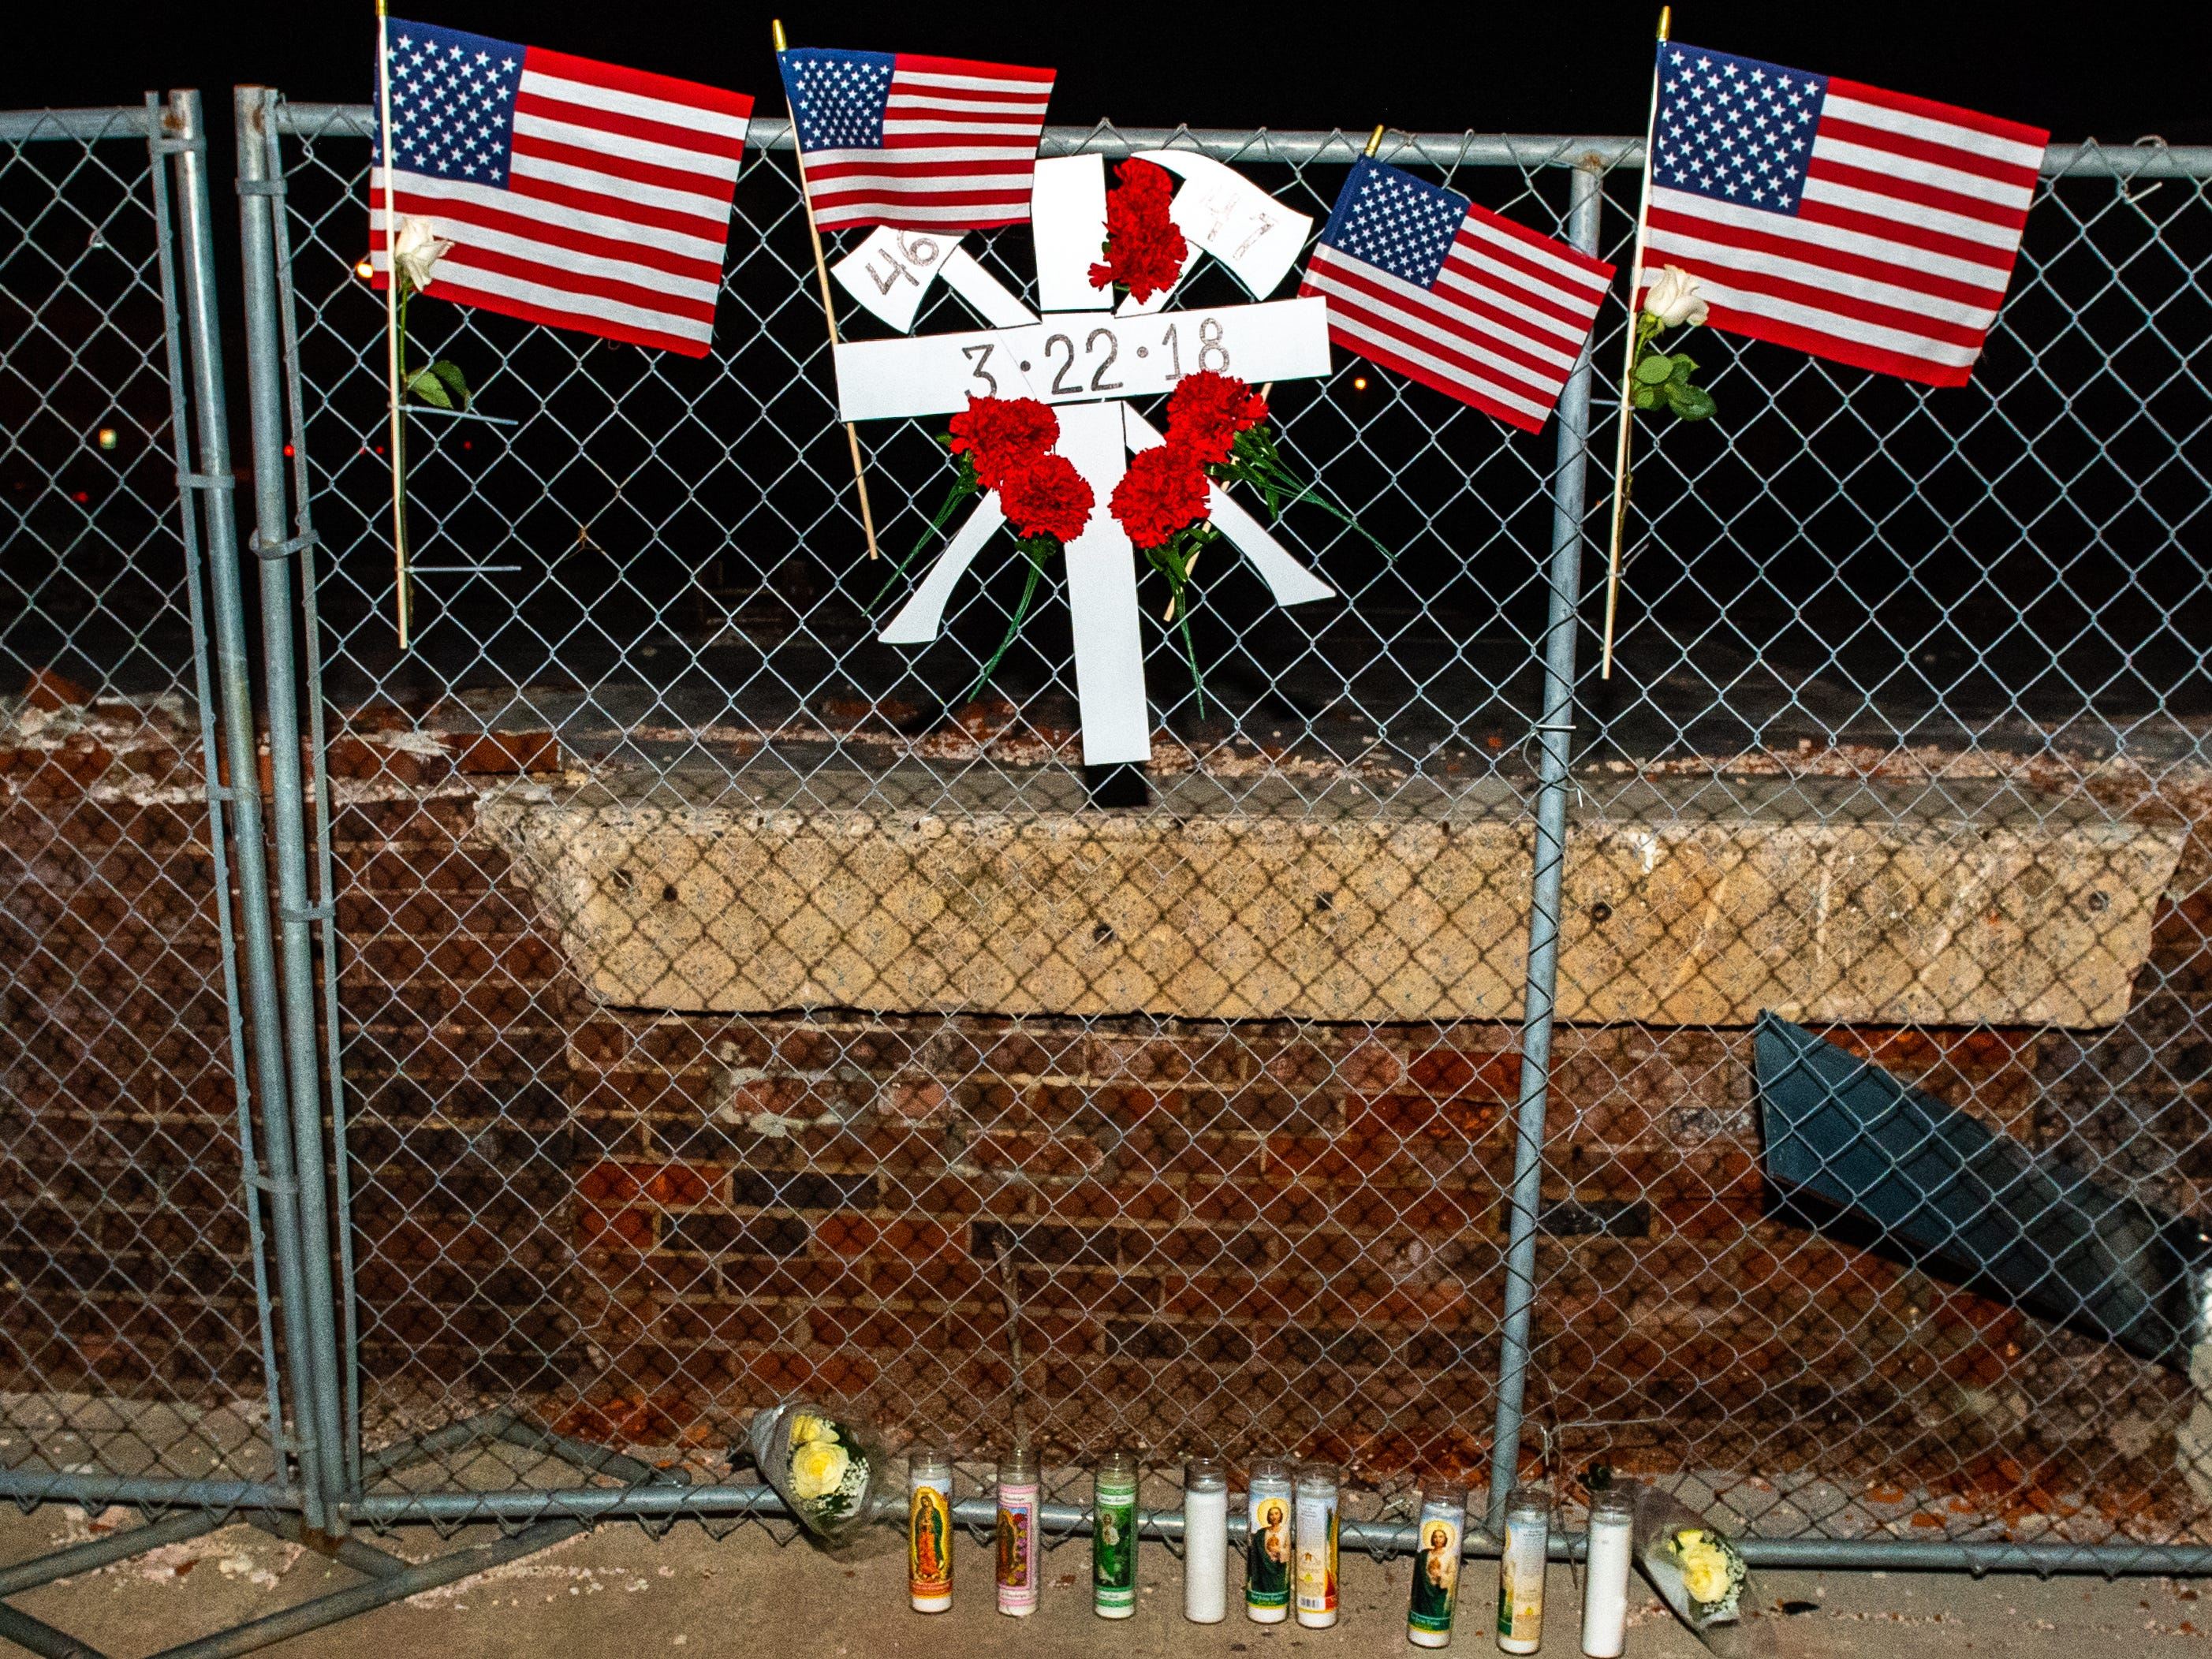 A memorial for firefighters Ivan Flanscha and Zachary Anthony is set up at the site where the Weaver building collapsed.